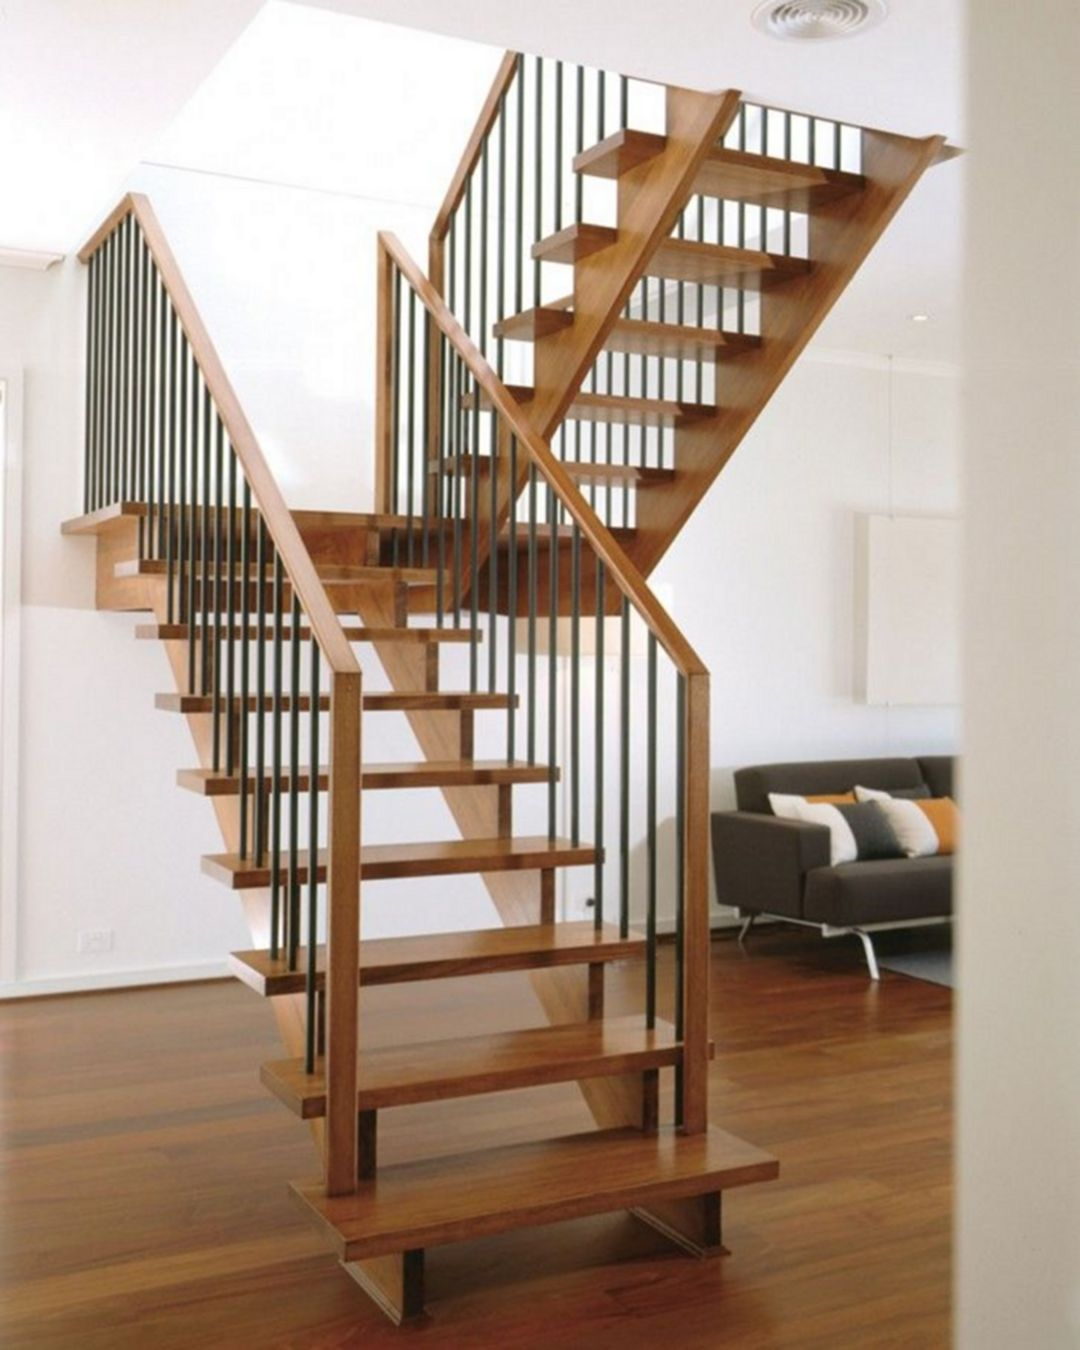 Lighting Basement Washroom Stairs: 20+ Stunning Basement Stair Design Ideas You Have To Know